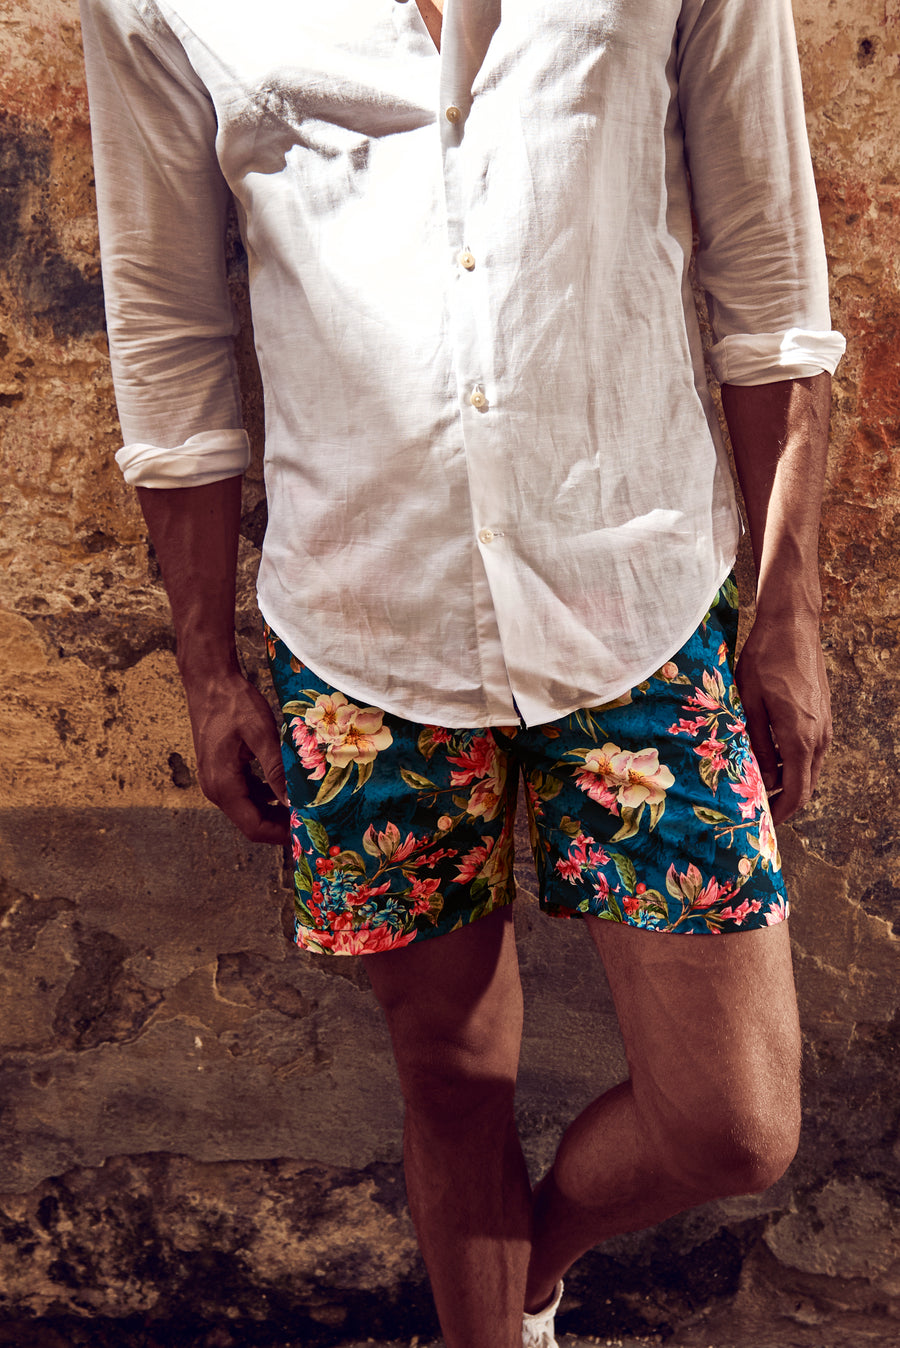 Nicolas Alexander offers the ultimate summer swim trunks